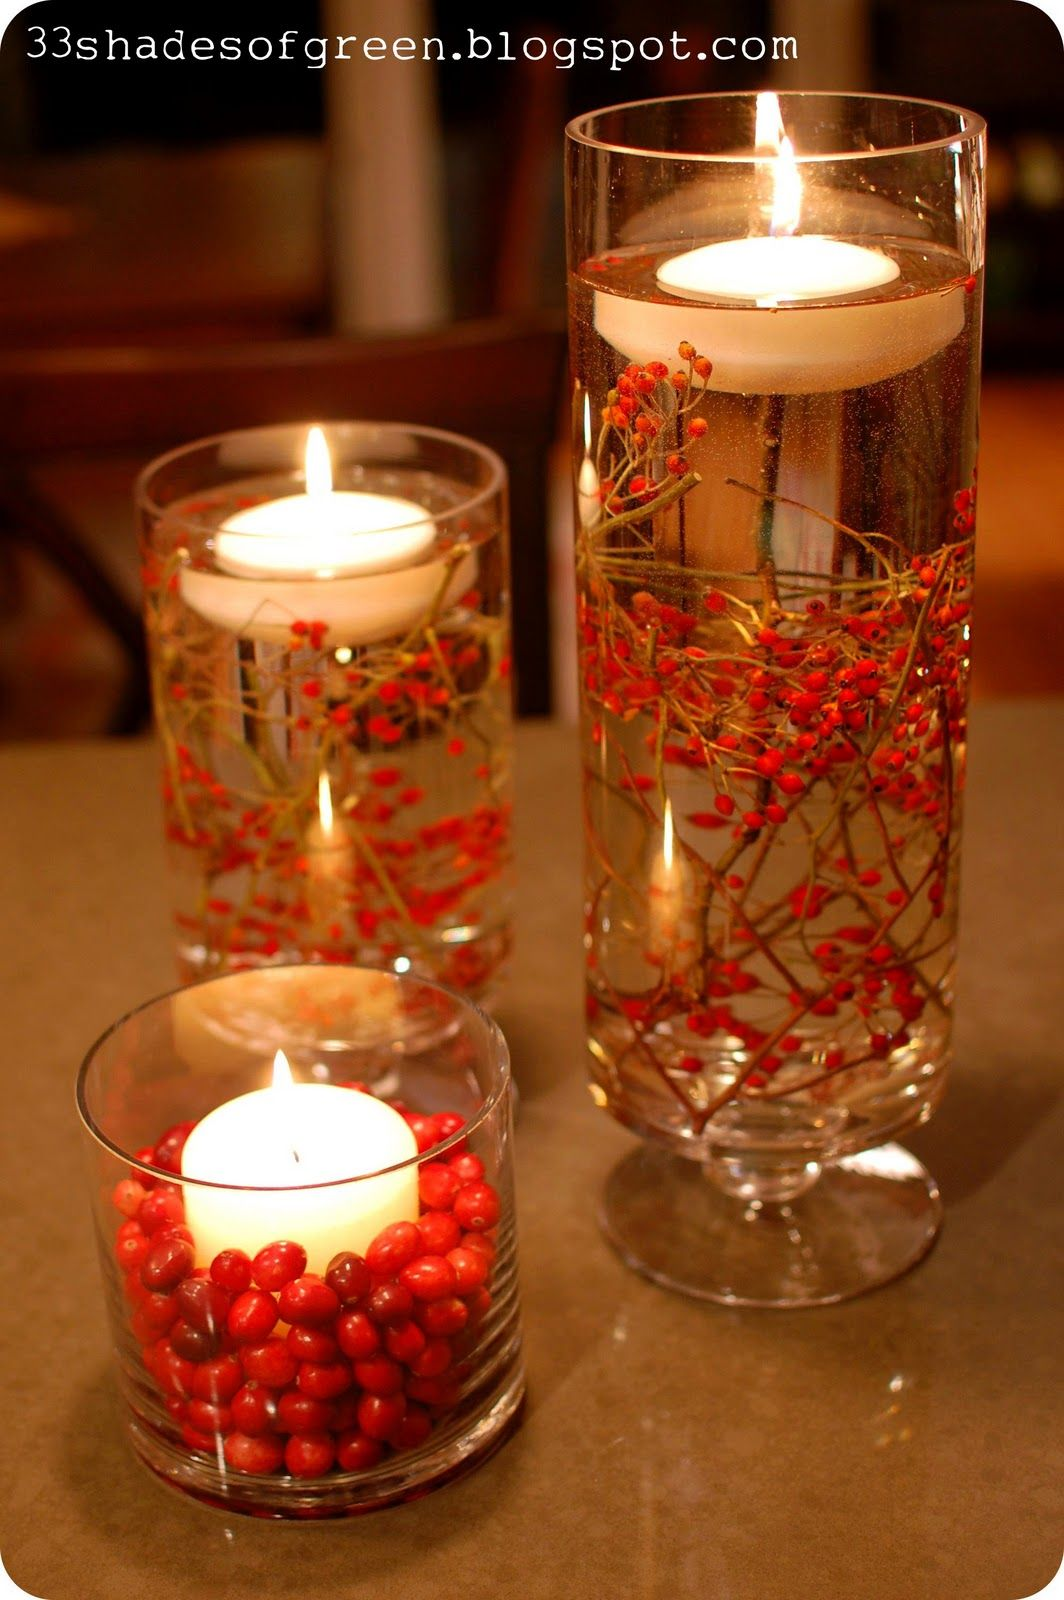 diy floating candle centerpiece ideas for wedding valentine christmas or any occasions